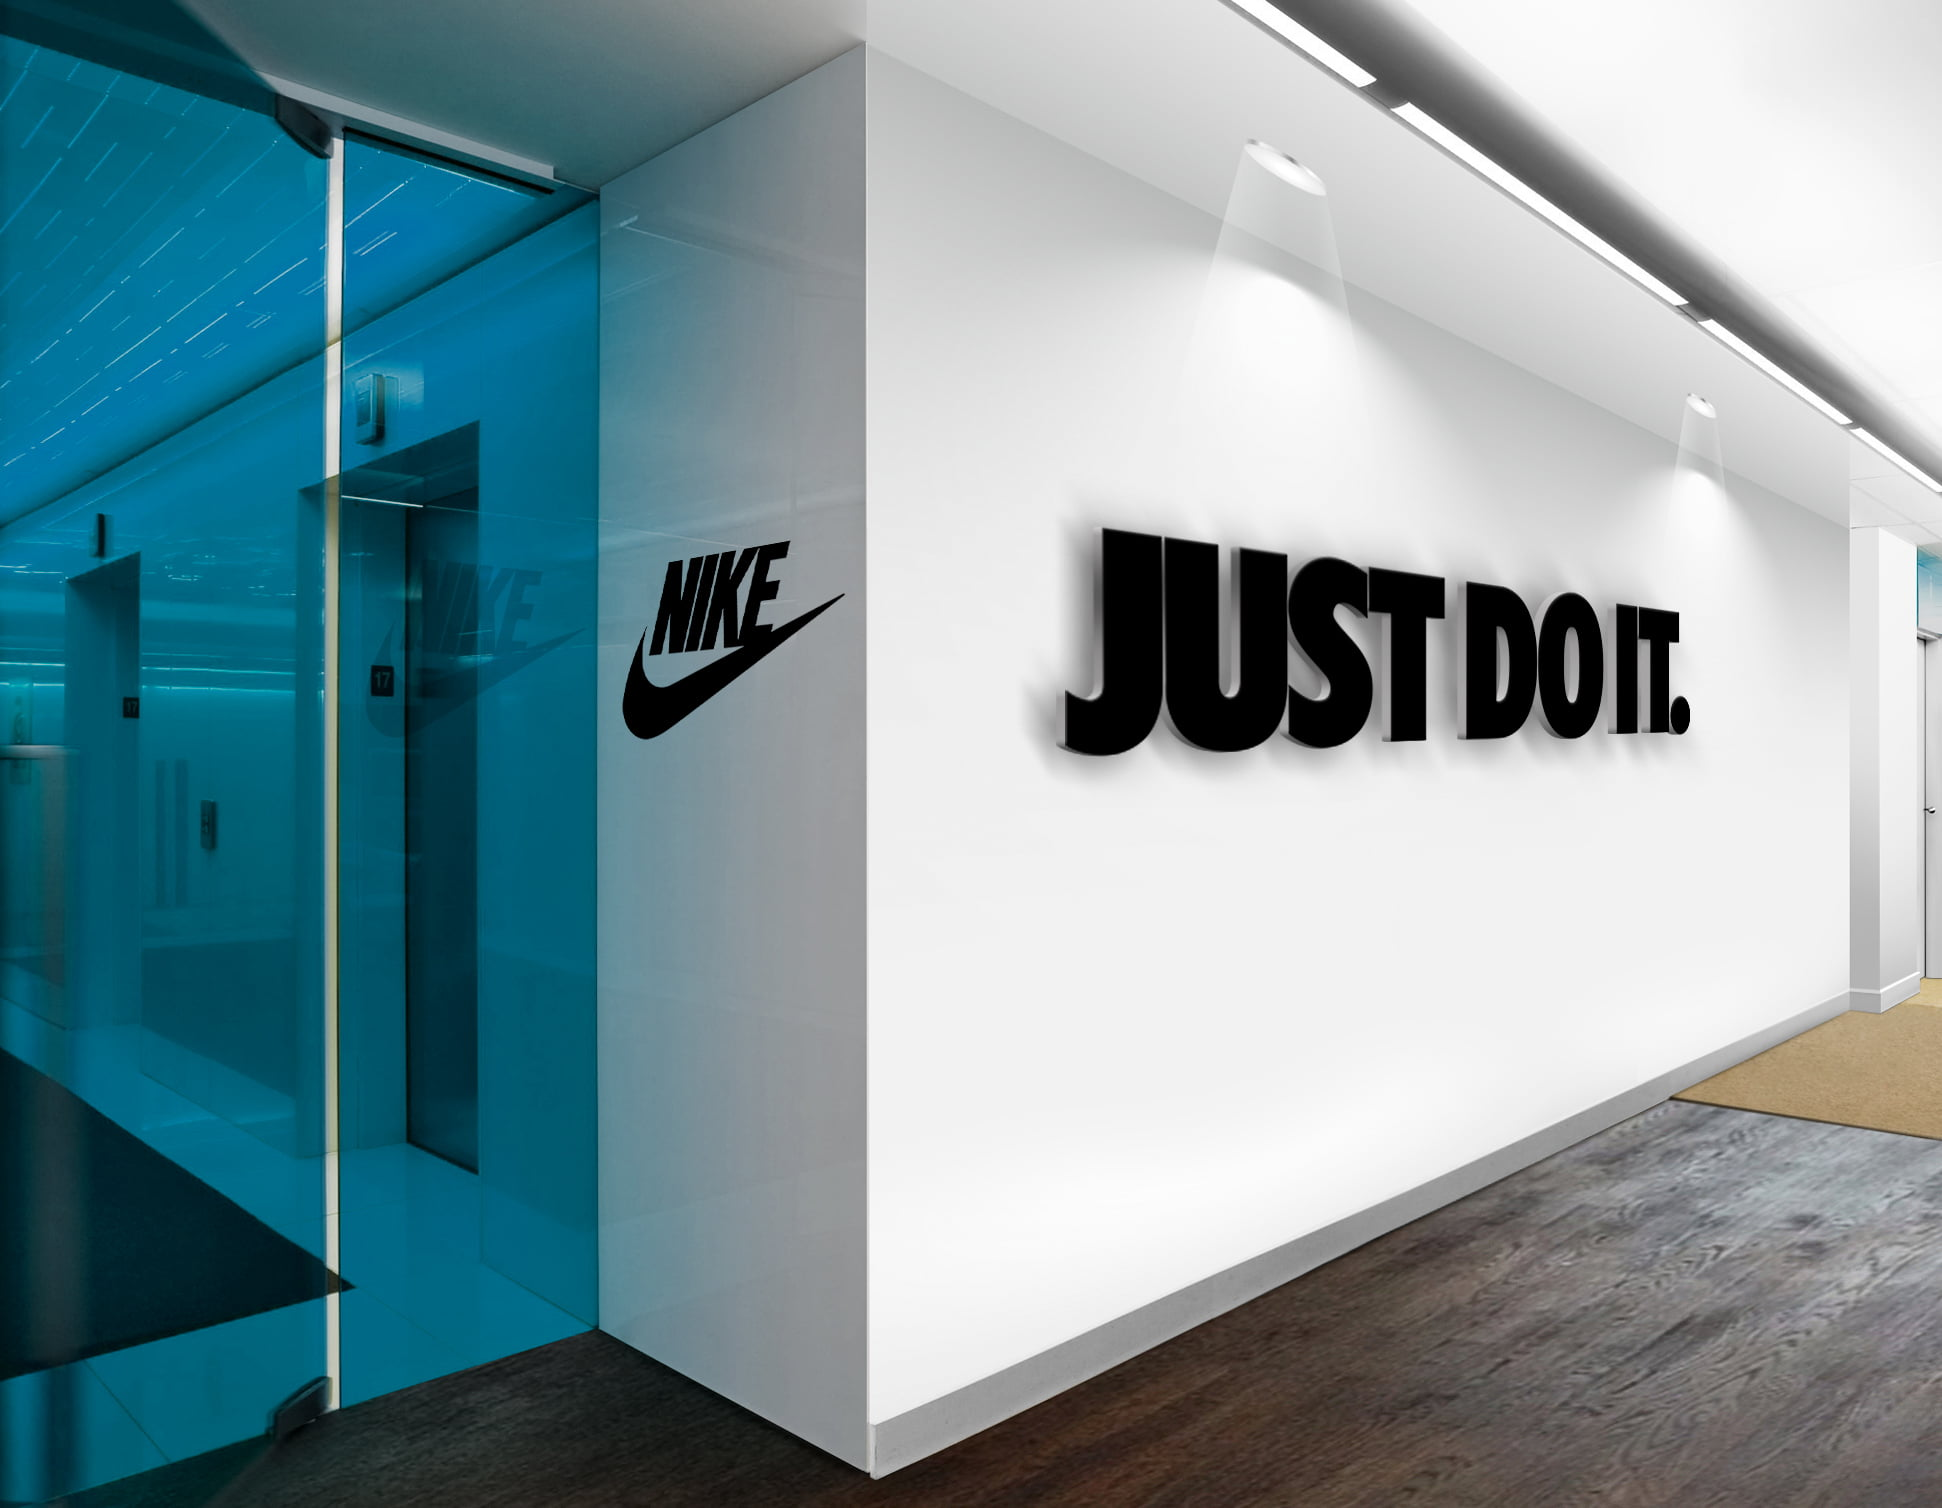 Nike-Just-Do-It-3D-Wall-Logo-&-Slogan-Mockup